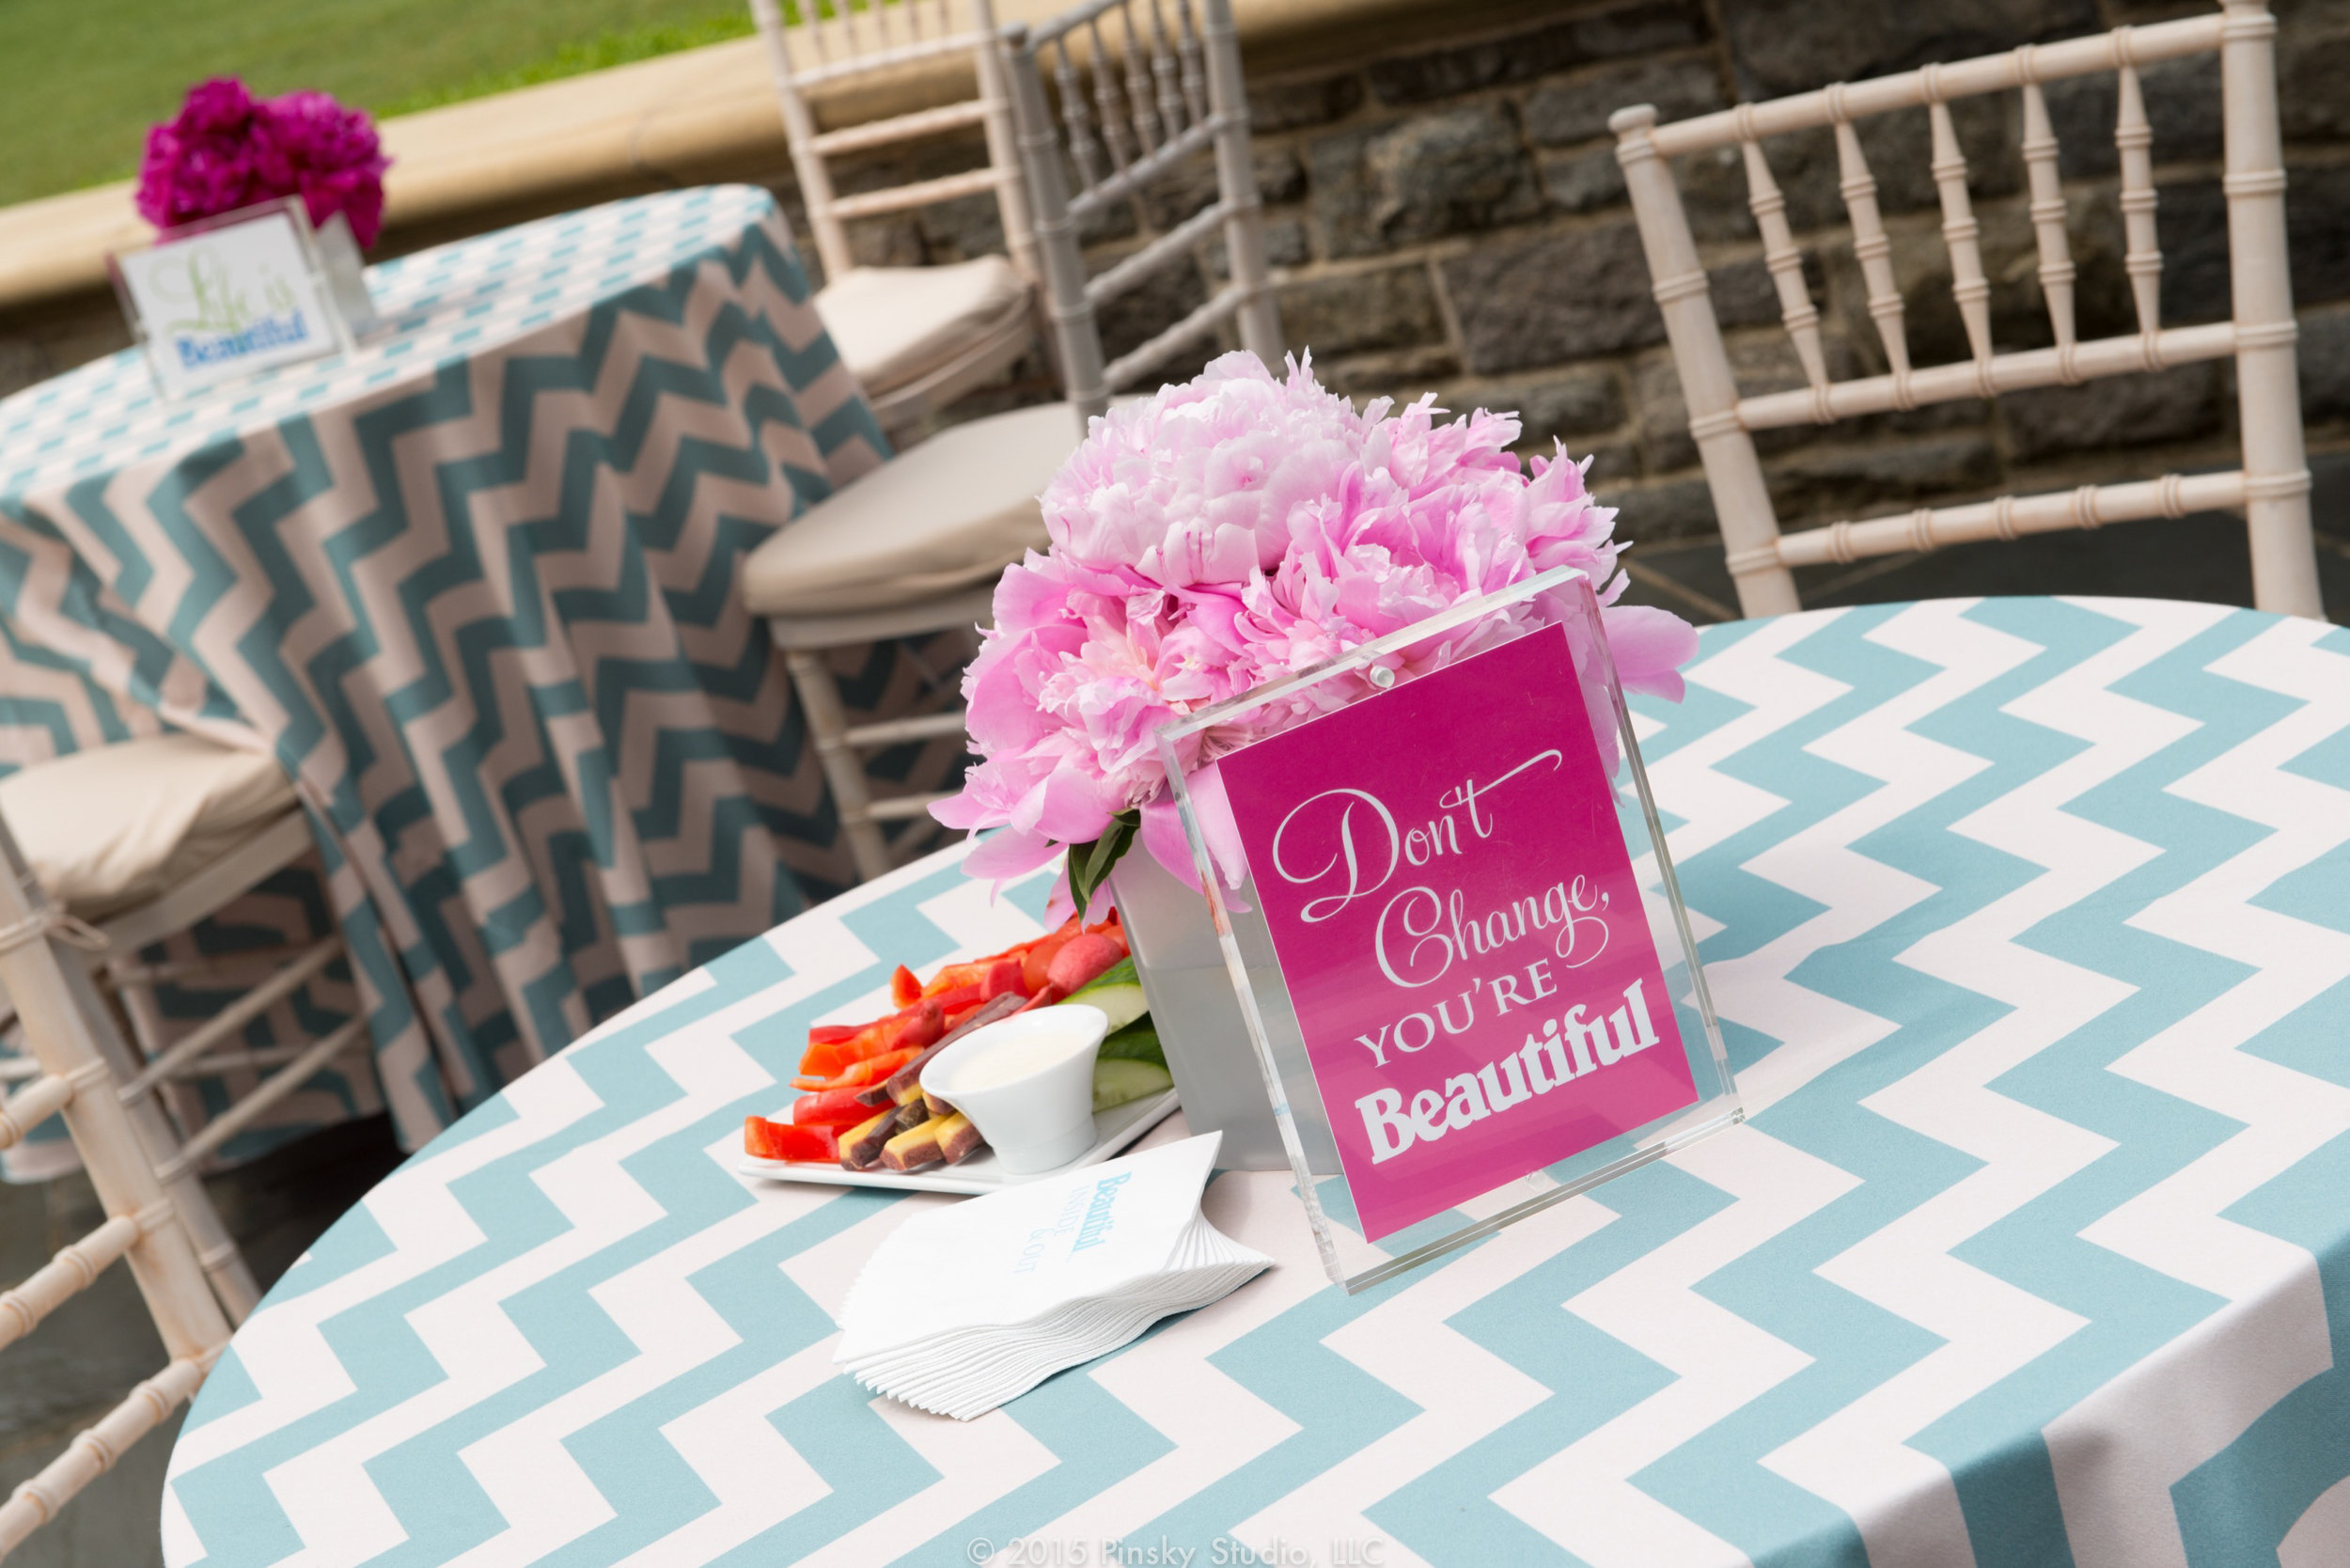 BEAUTIFUL DAY - Venue: Private Residence, Scarsdale, NYPhotography: Pinsky Studio